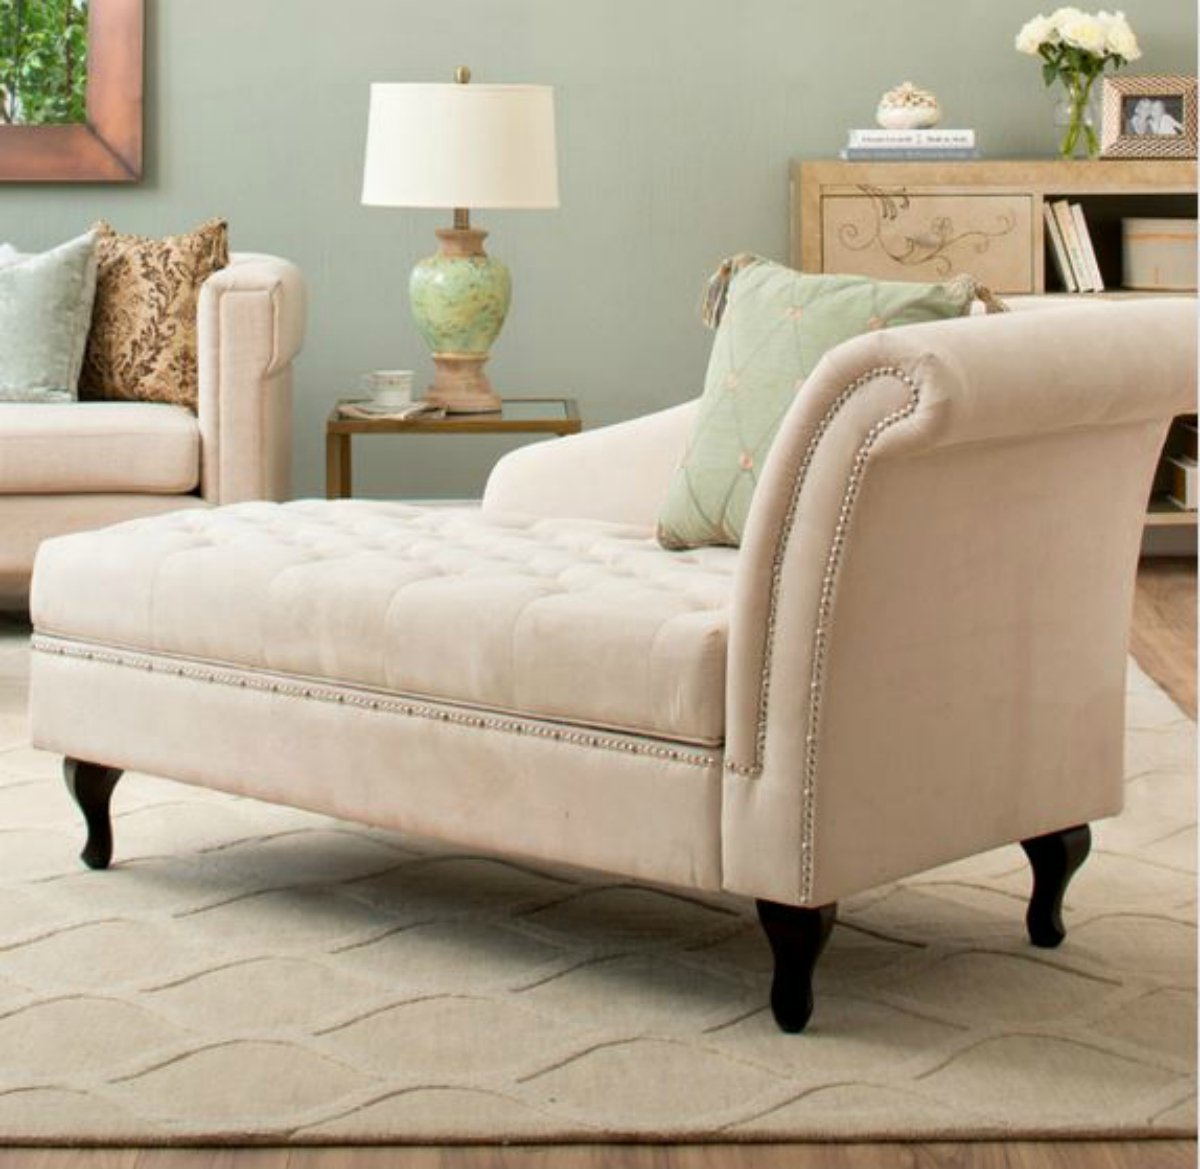 Traditional Storage Chaise Lounge - This Luxurious Lounger ...